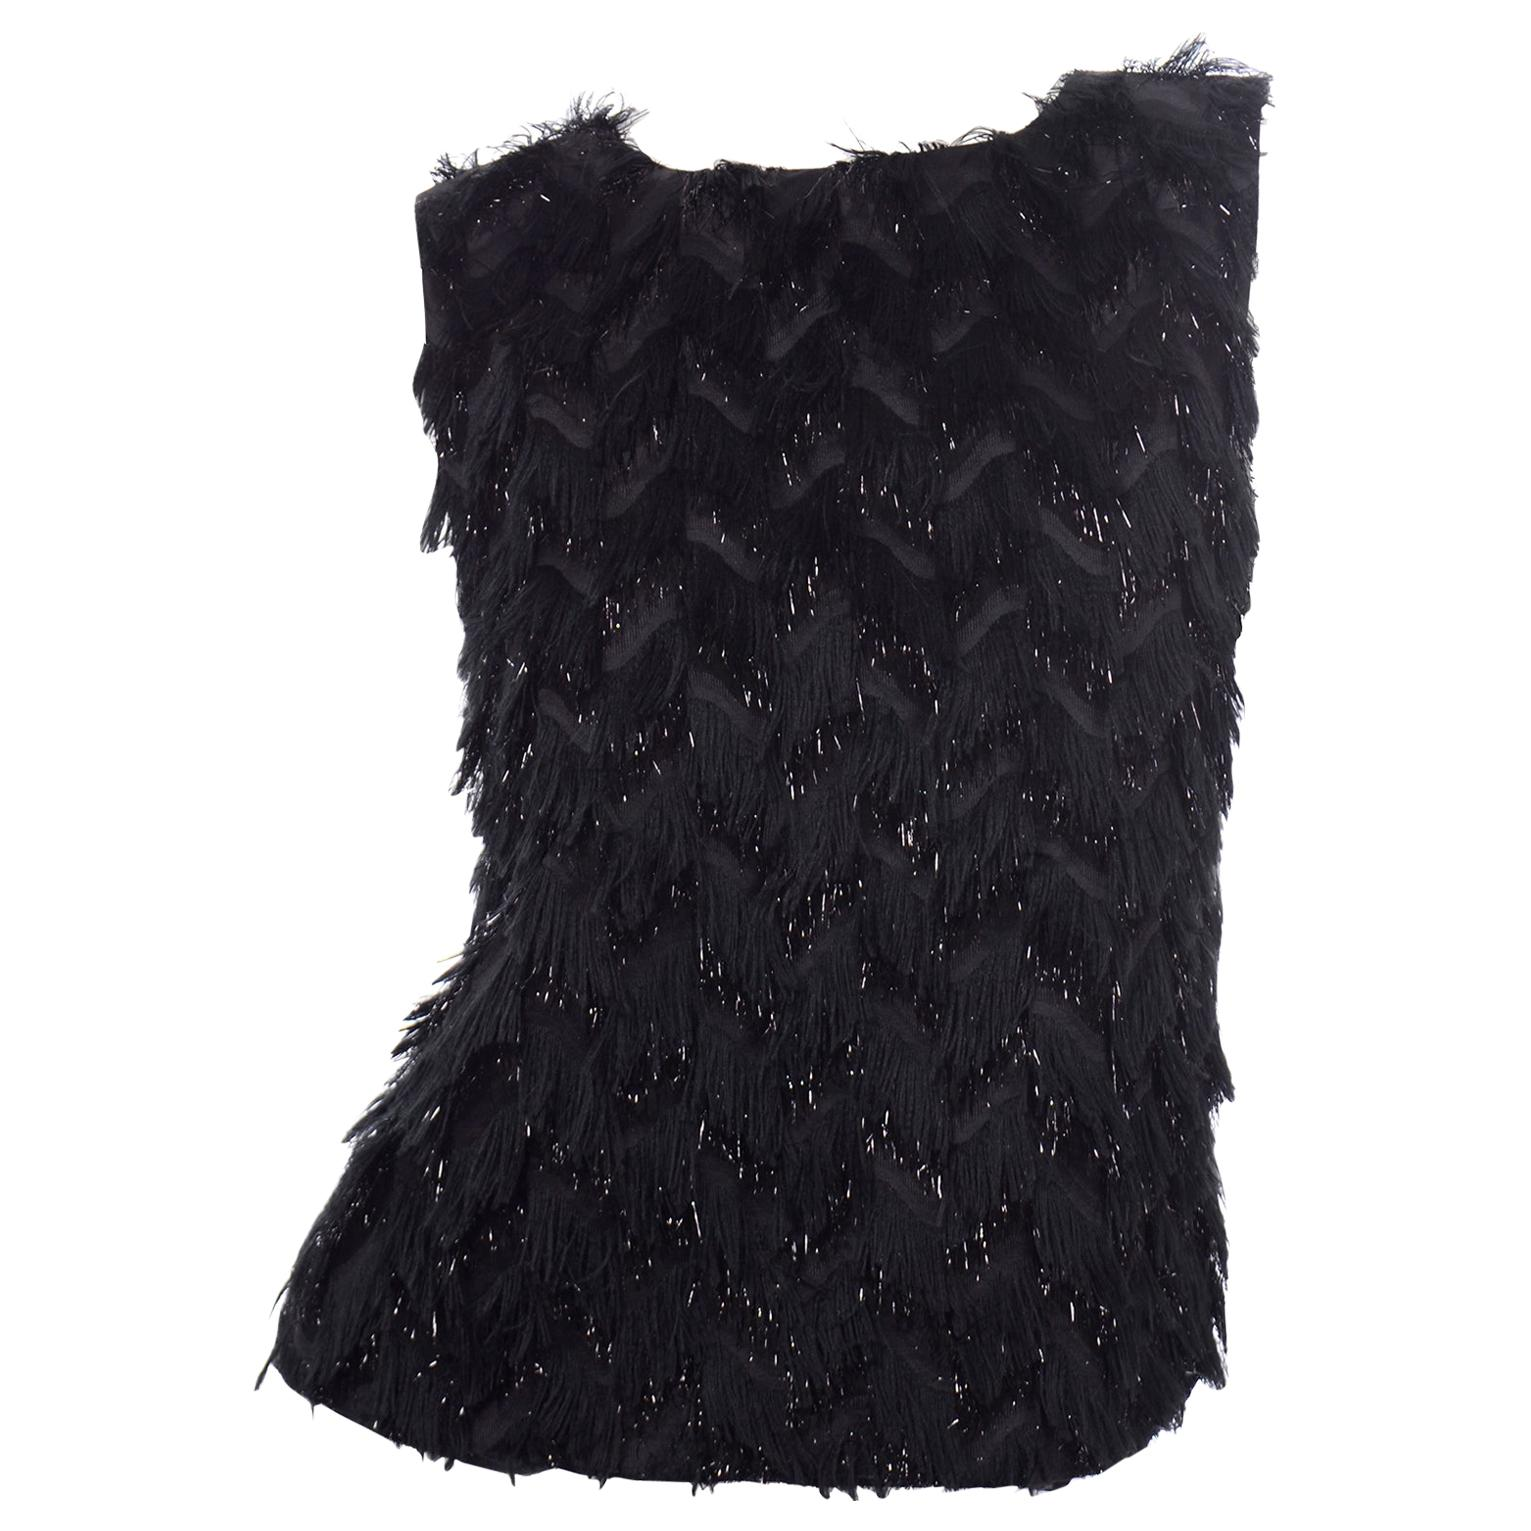 Alber Elbaz Lanvin Fall Winter 2014 Sleeveless Black Fringe Evening Top